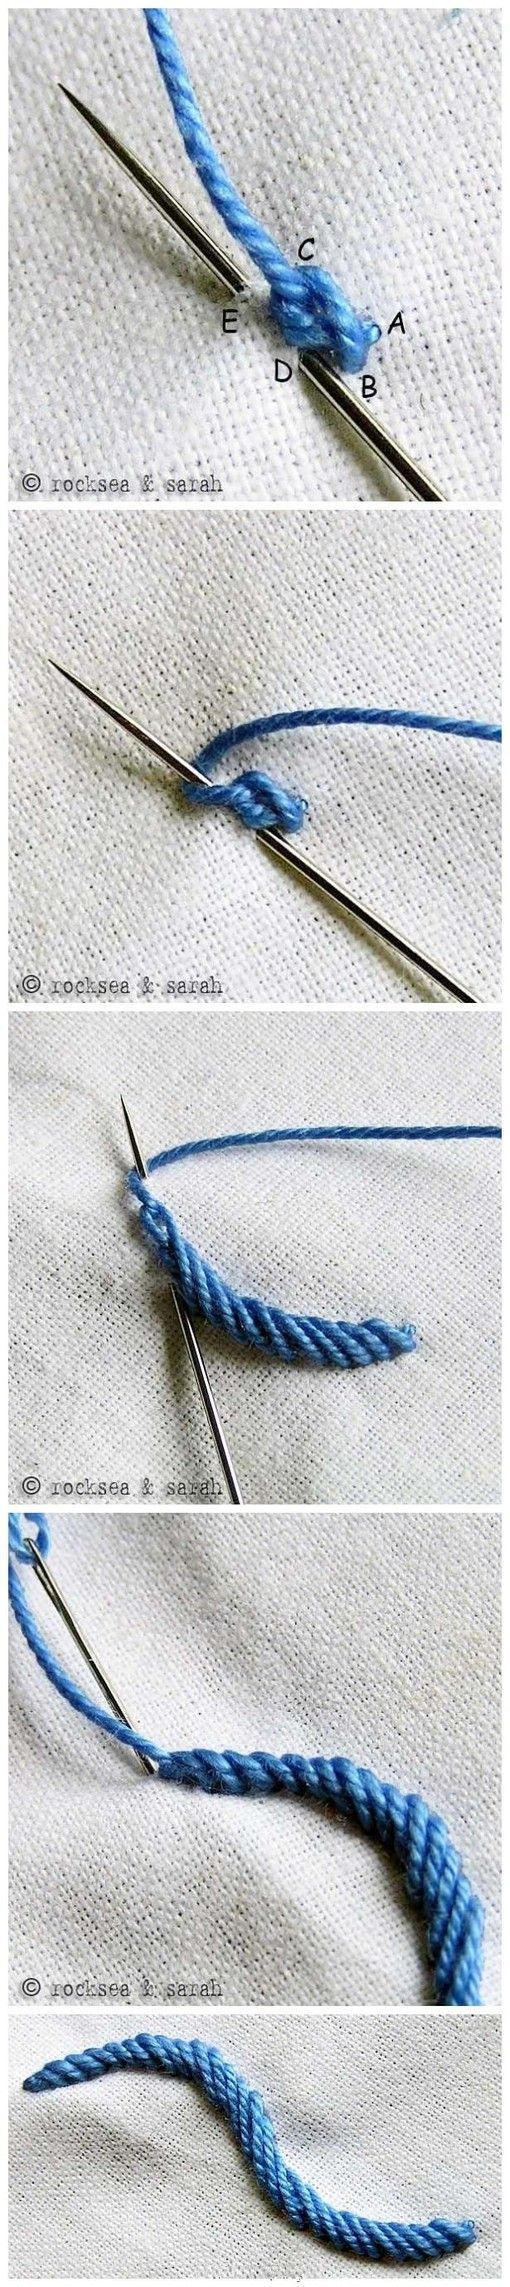 this site has every embroidery stitch known to man...i think!